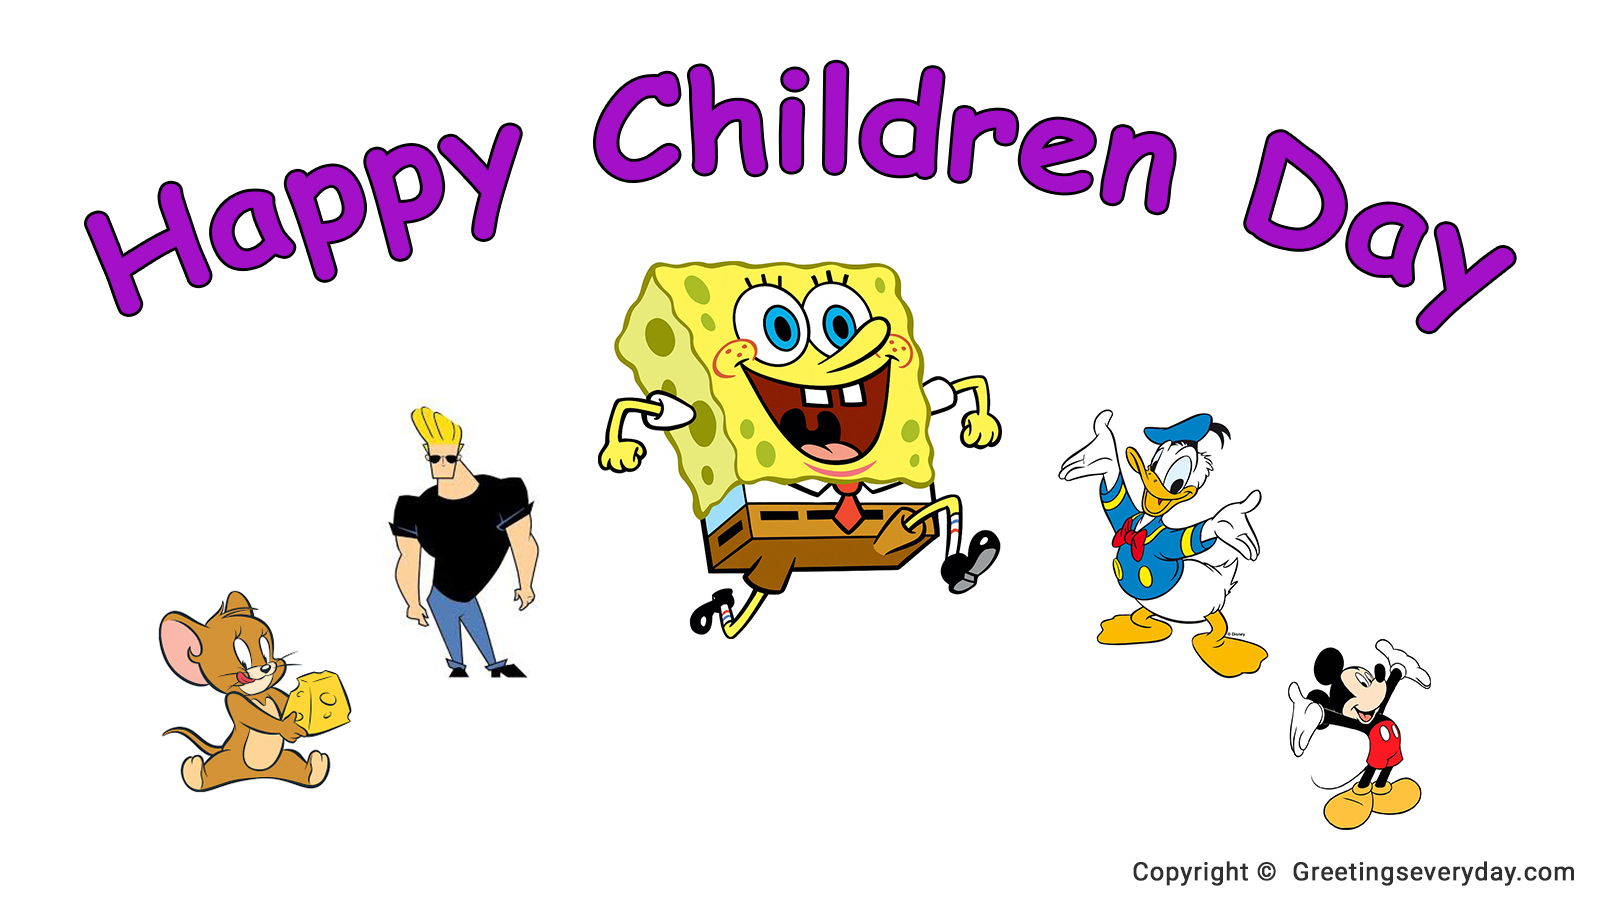 Happy Children's Day Photos & Pictures